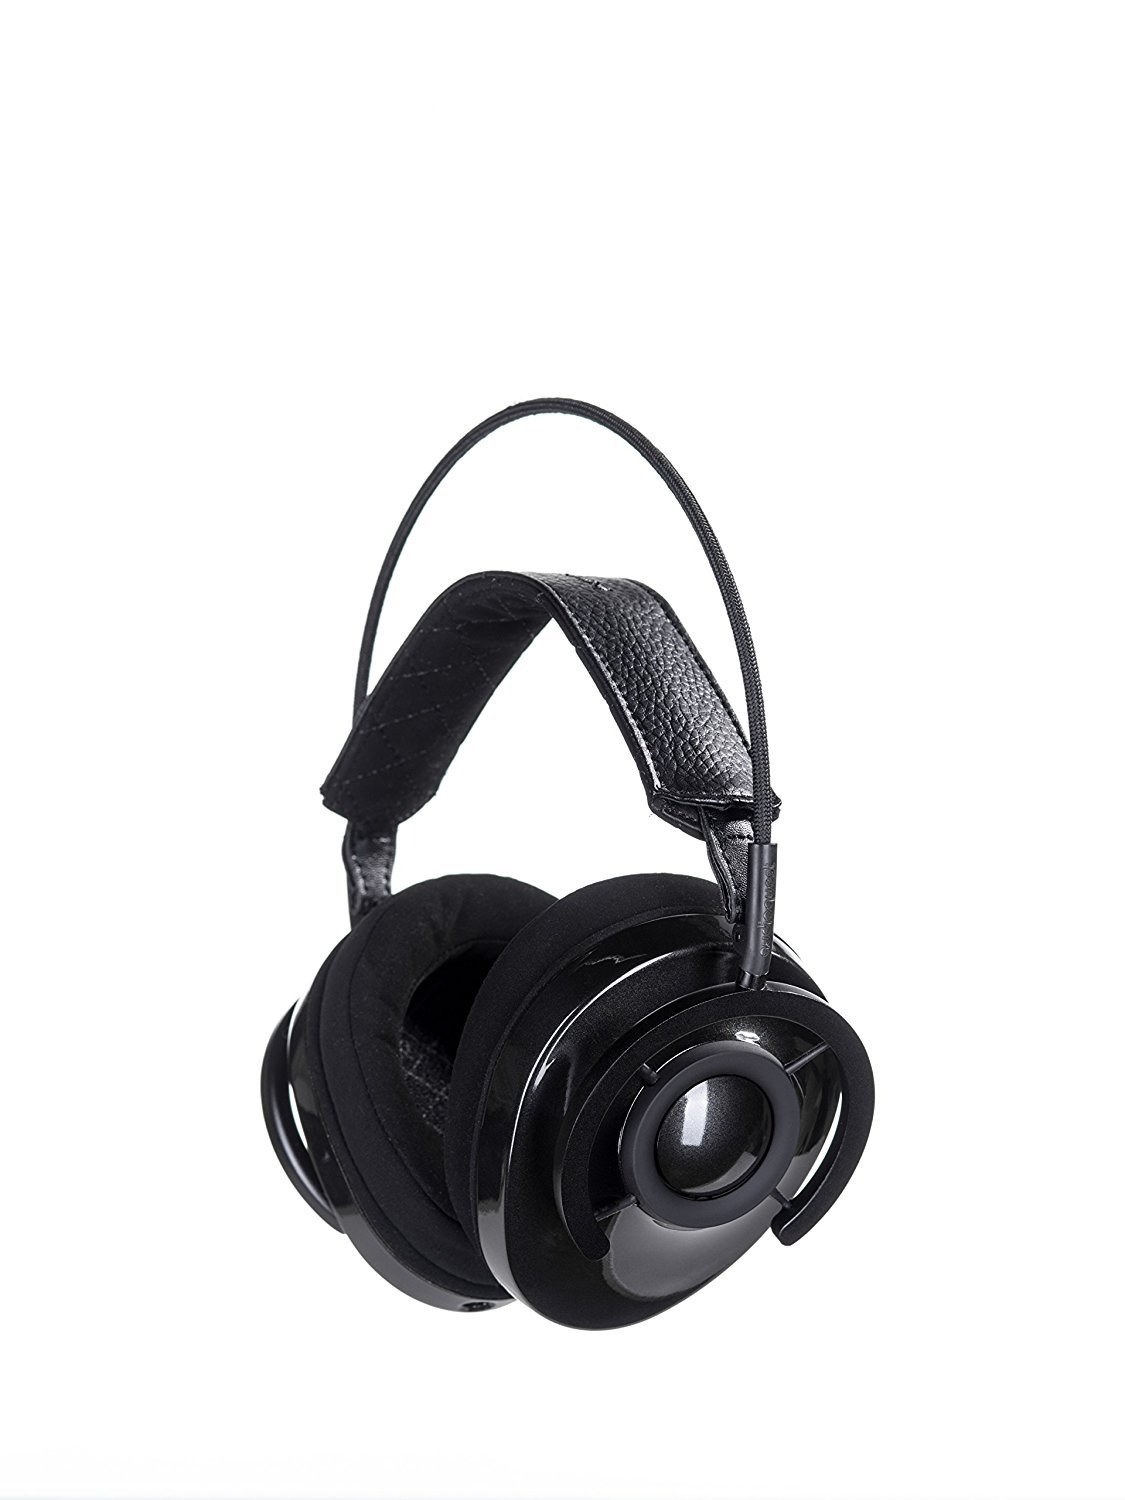 AudioQuest Carbon Around-The-Ear Headphones With Dragontail USB 2.0 Extender For the DragonTail DAC And Custom Designed Instrument Cloth (NOWLHEADCARBON) by AudioQuest (Image #2)